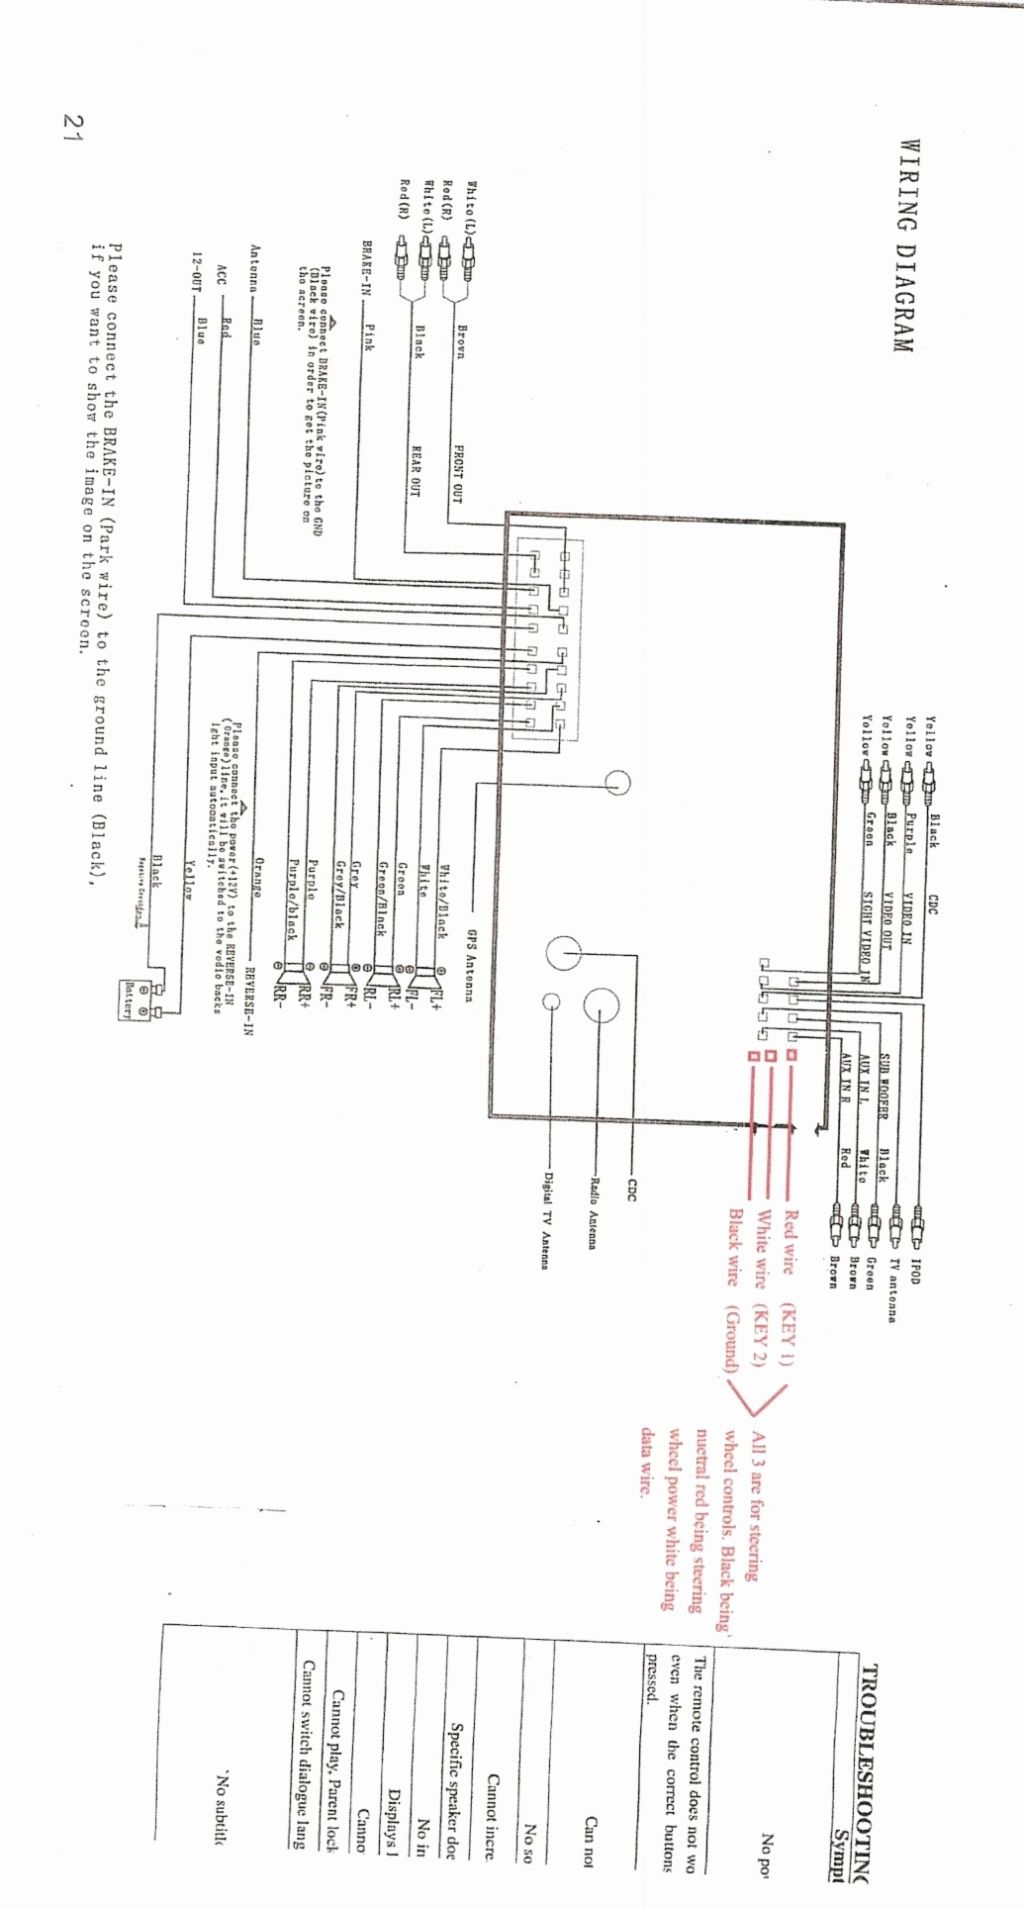 axxess interface wiring diagram book